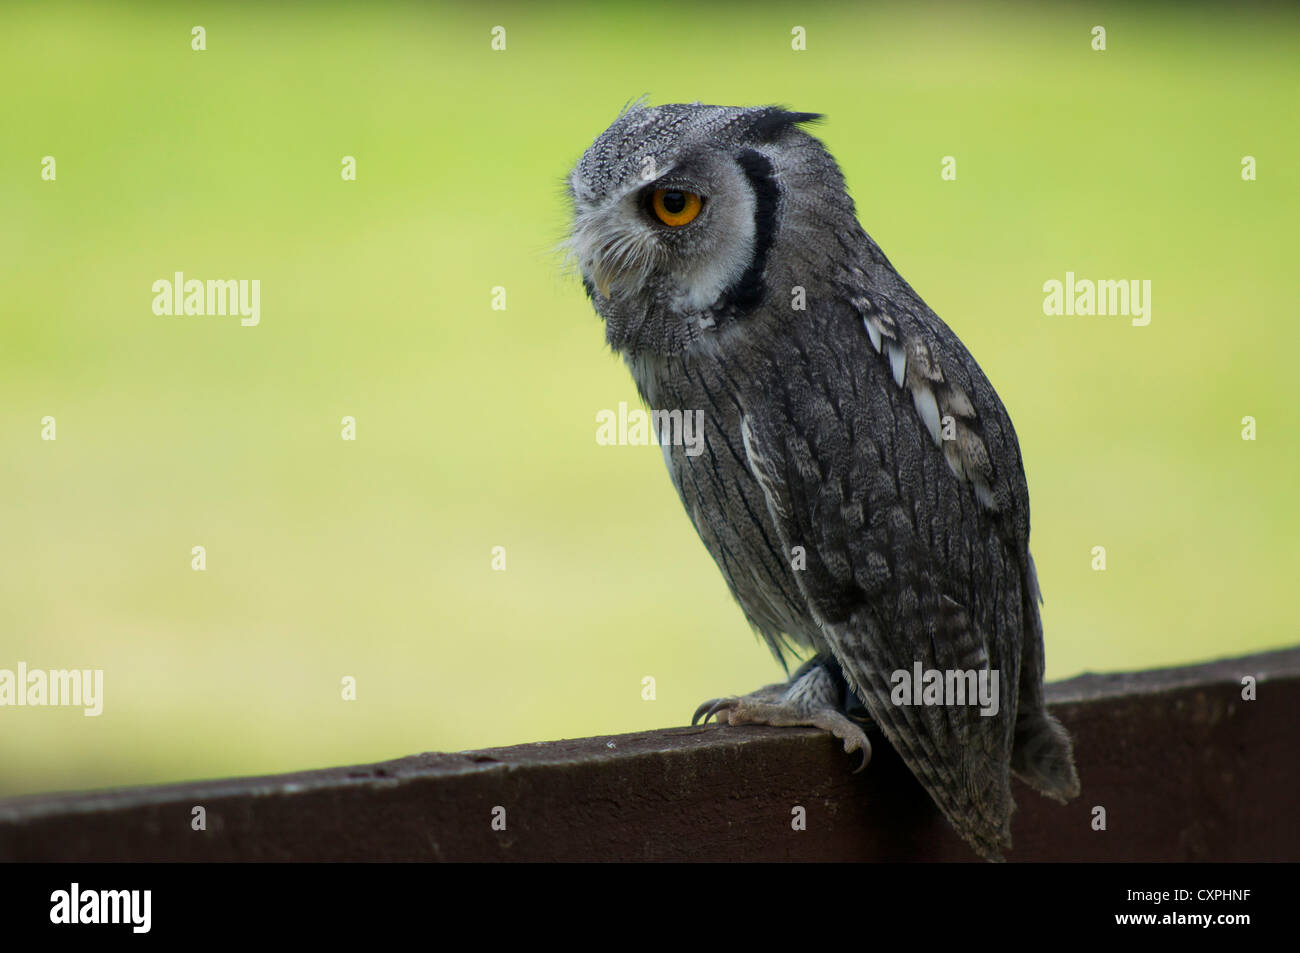 Scops owl sitting in fence in England Stock Photo